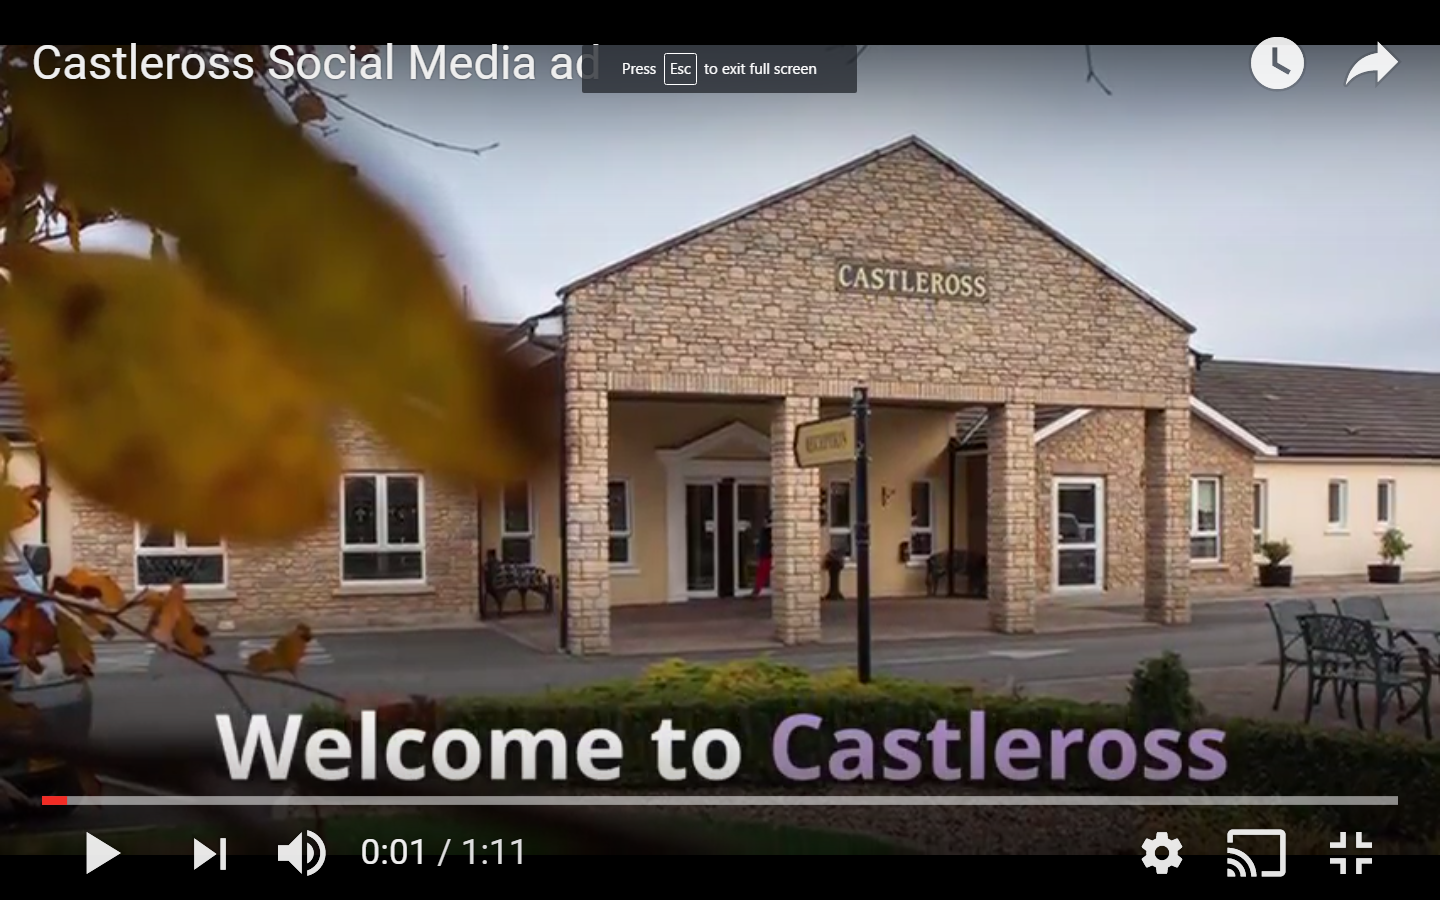 We hope you enjoy our new Castleross video showing aspects of Castleross